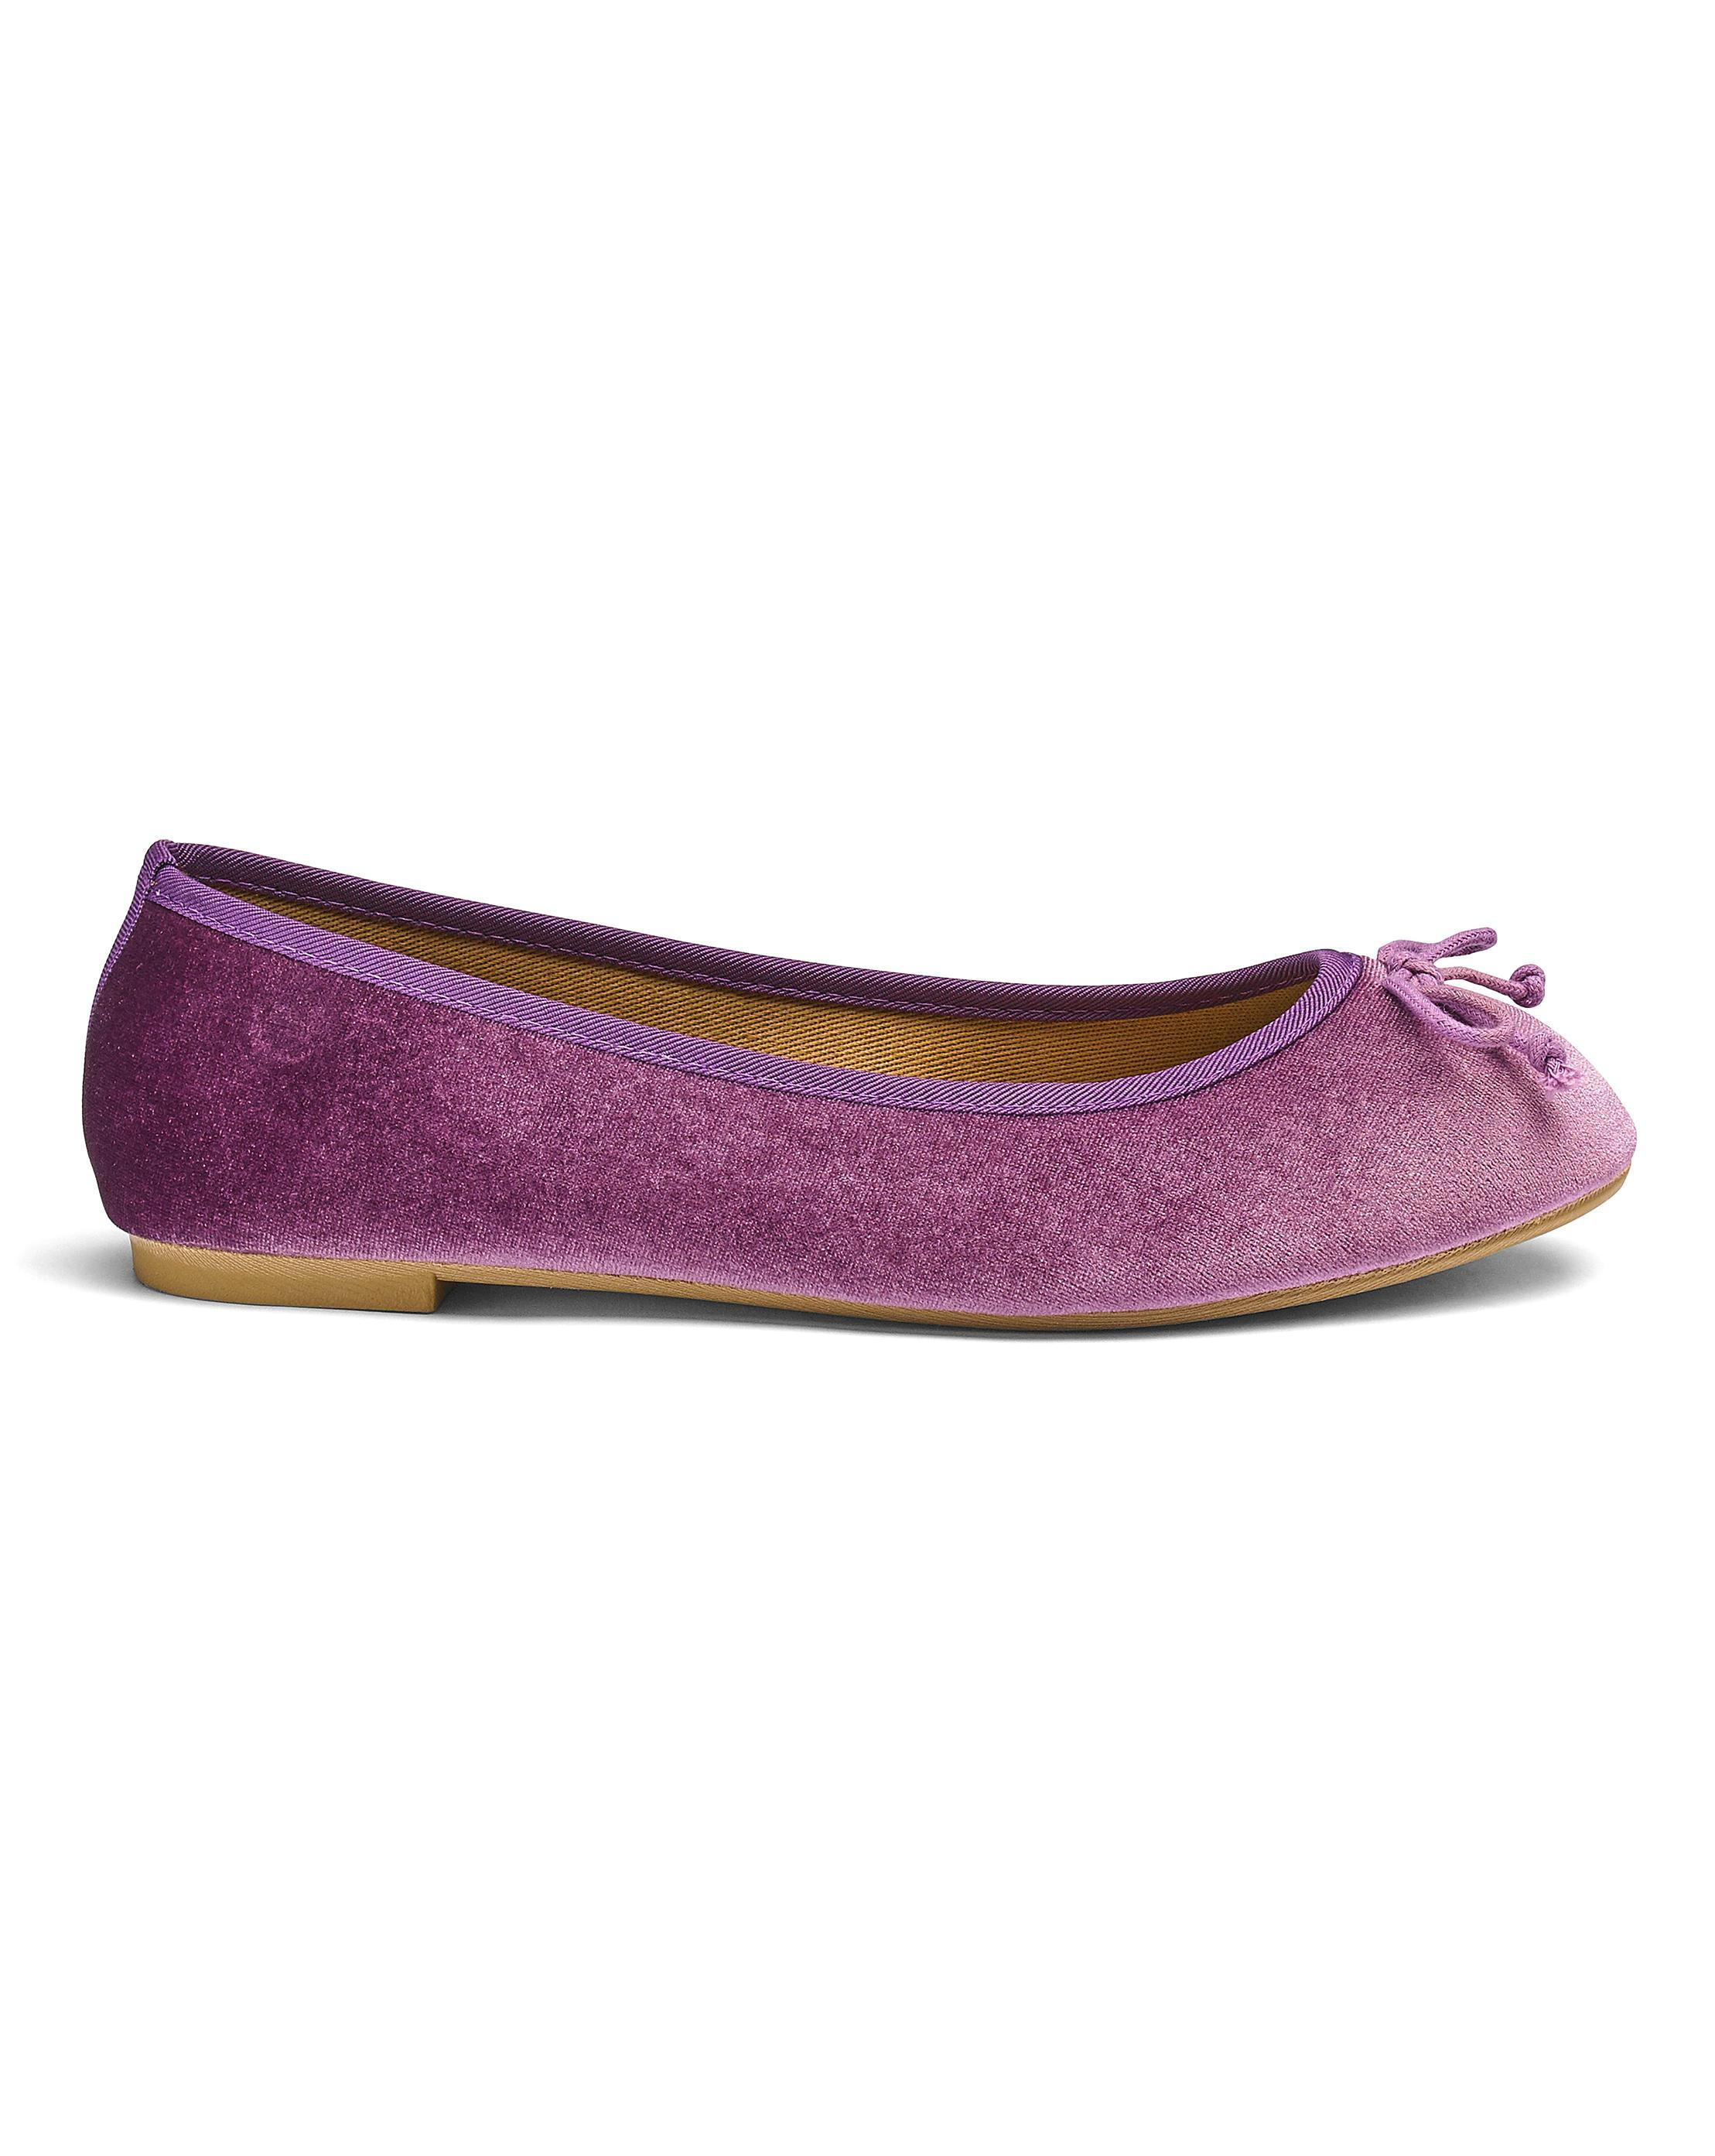 sale 100% guaranteed Sole Diva Basic Ballerina cheap under $60 buy cheap exclusive outlet locations 7ucIqLZg